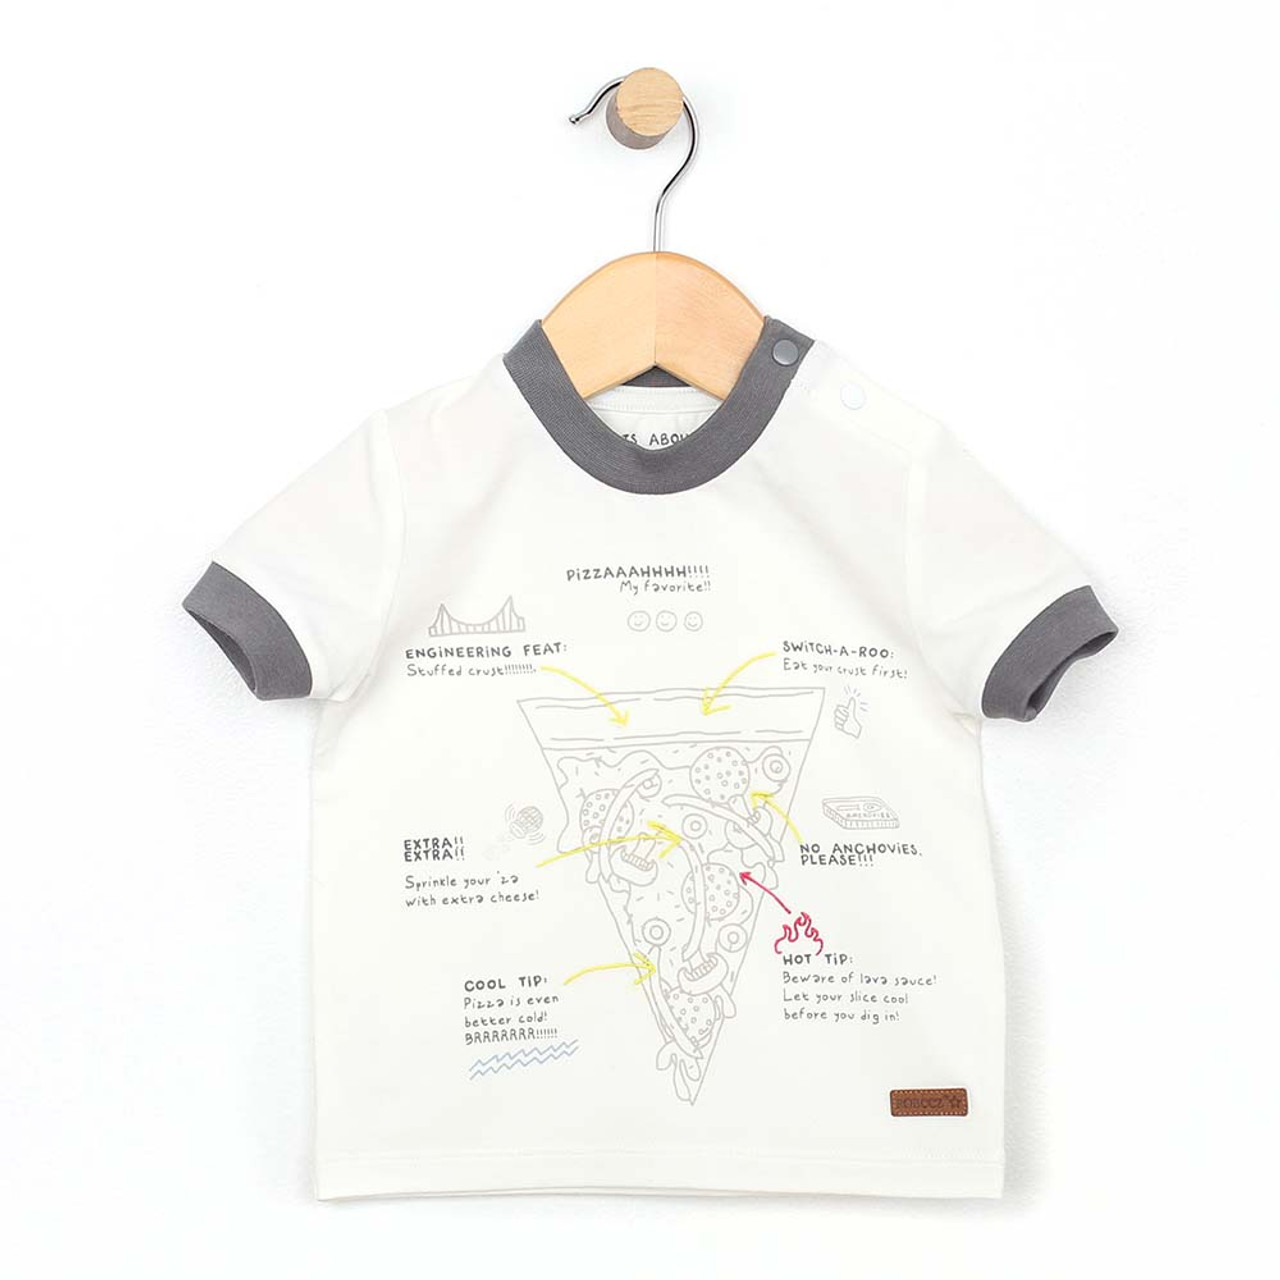 539d588450d White cotton t-shirt for baby and toddler boys featuring a pizza graphic.  Front